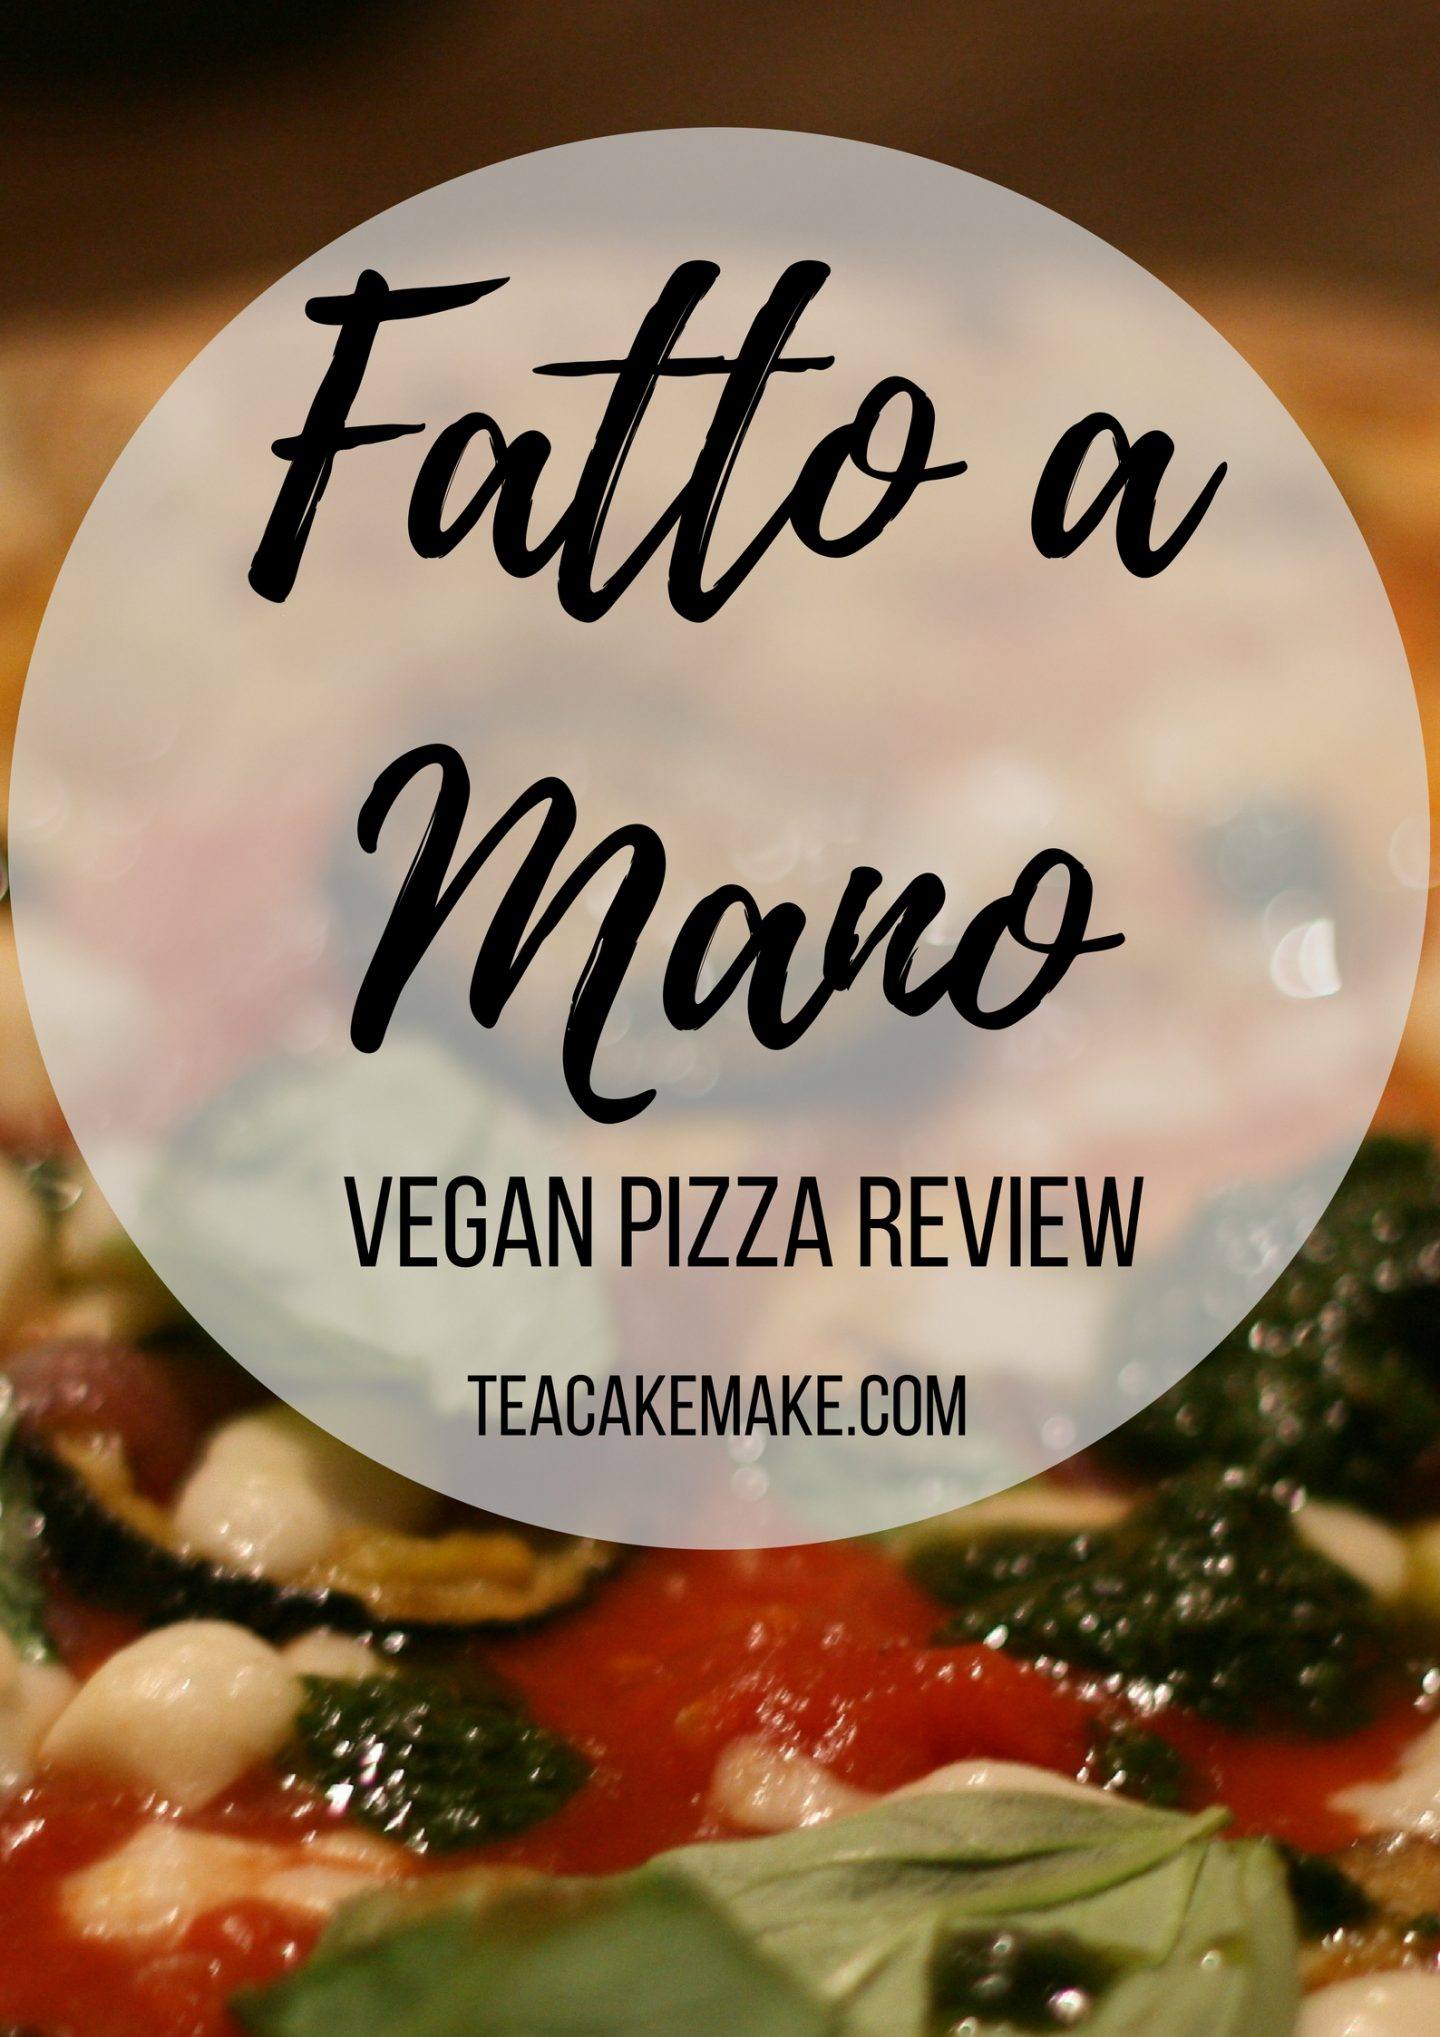 Fatto a Mano Brighton vegan pizza review